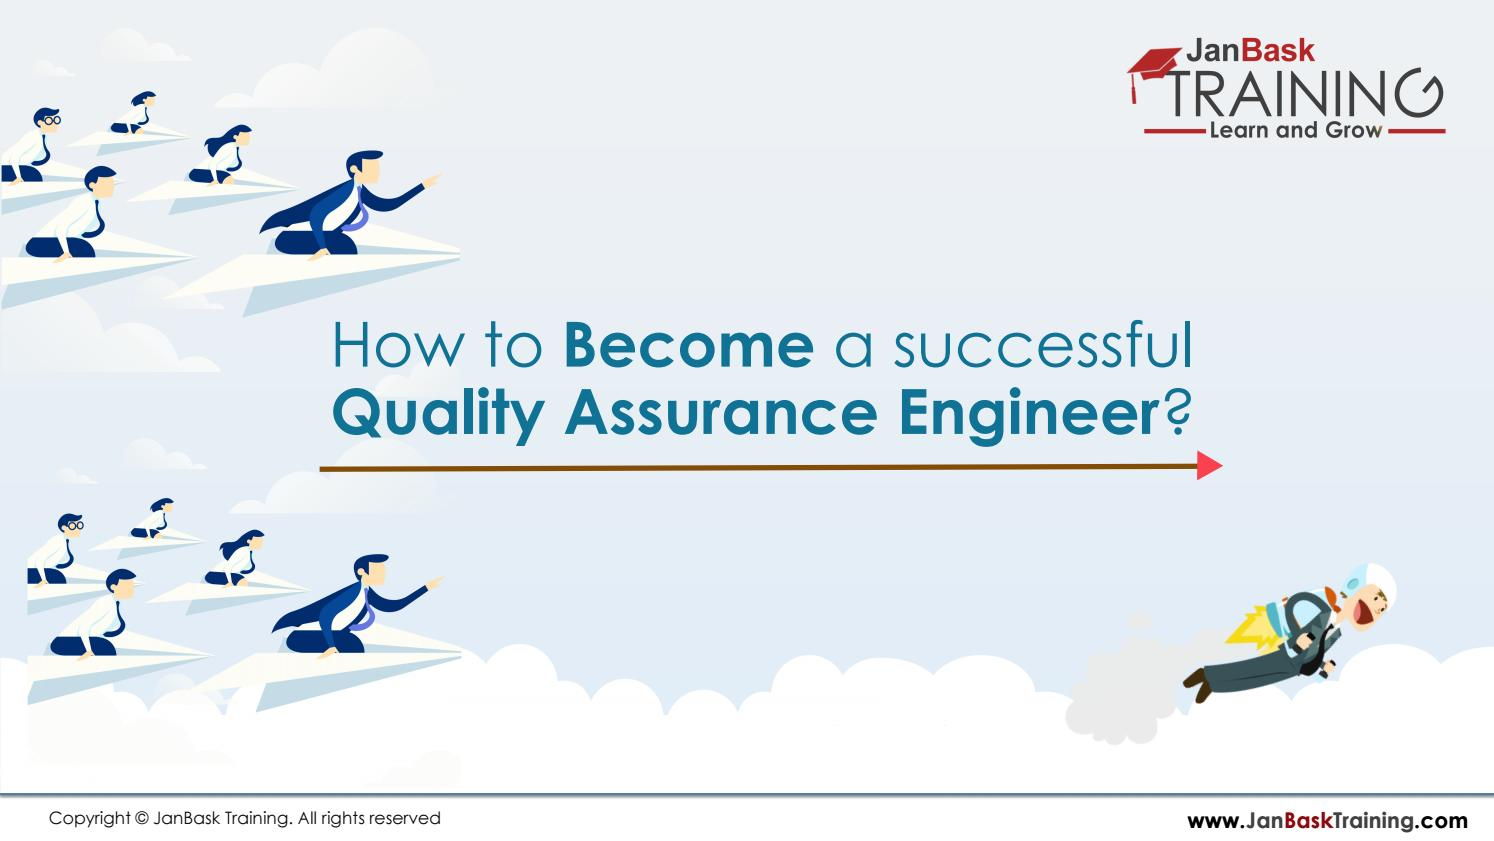 How to Become a successful Quality Assurance Engineer? by